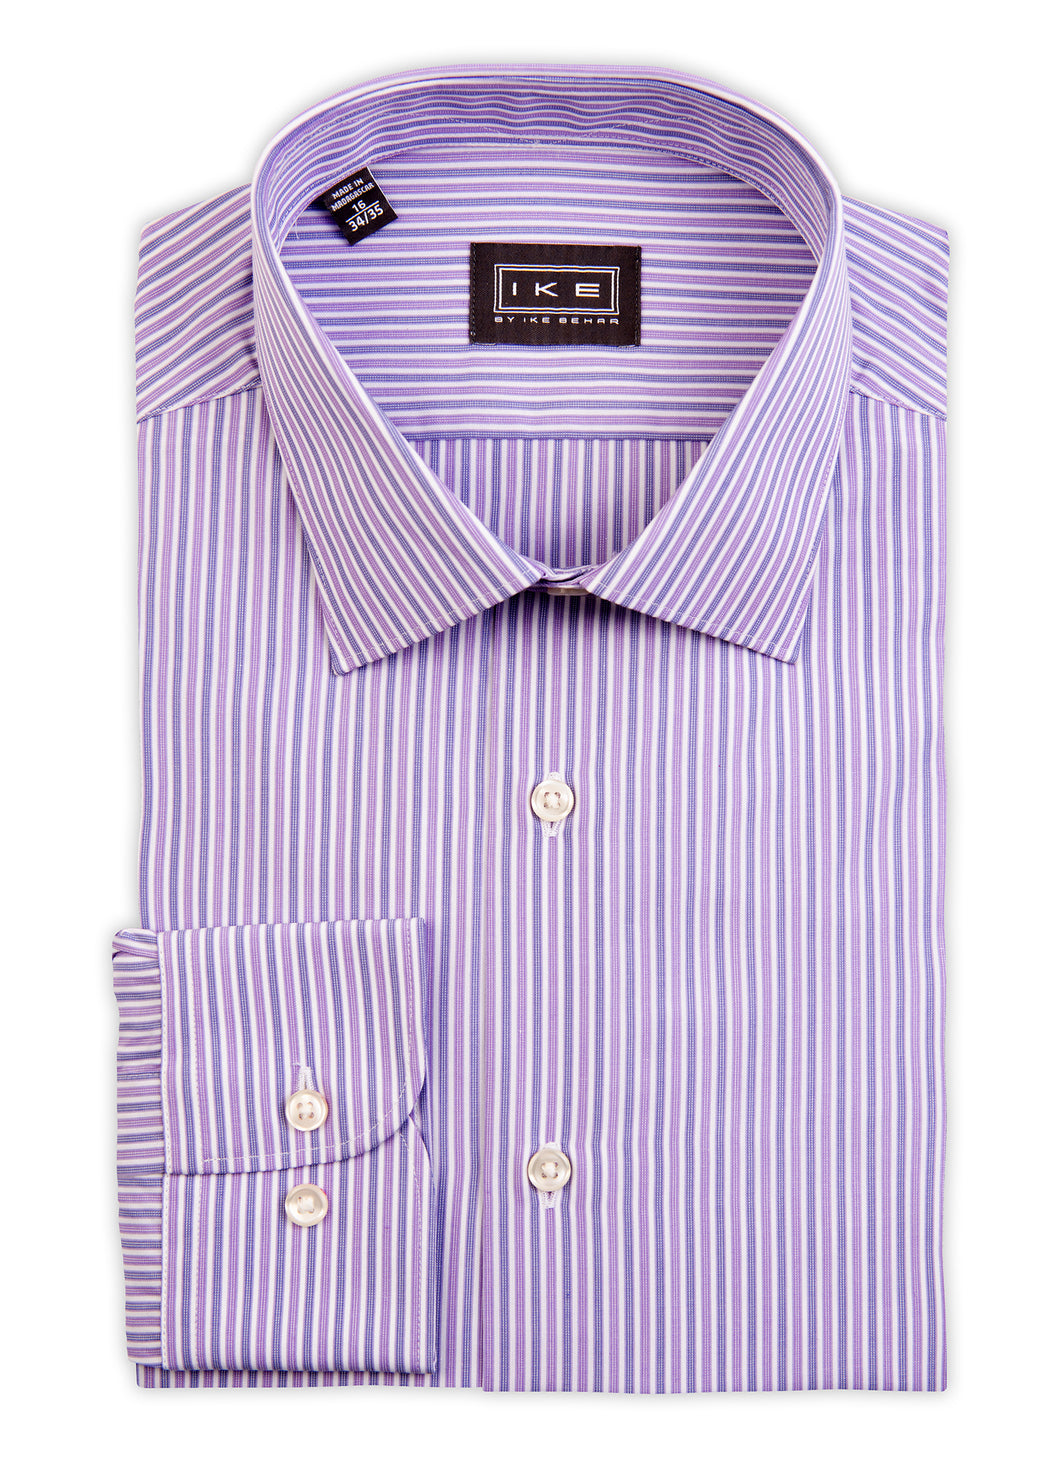 Lavender Multi-Stripe Ike by Ike Behar Dress Shirt